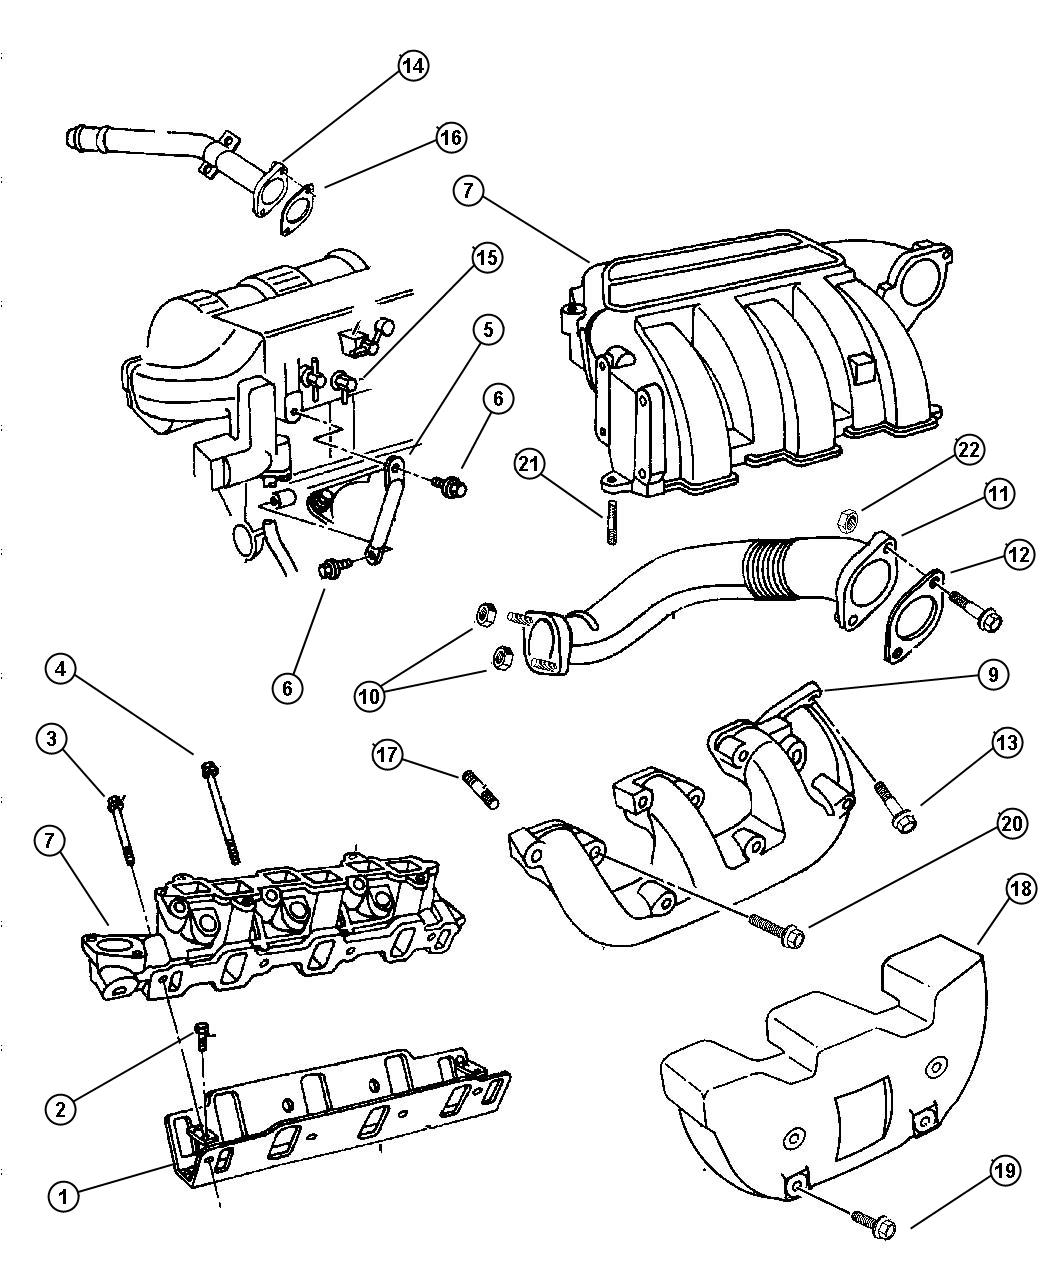 chrysler town amp country Motor diagram